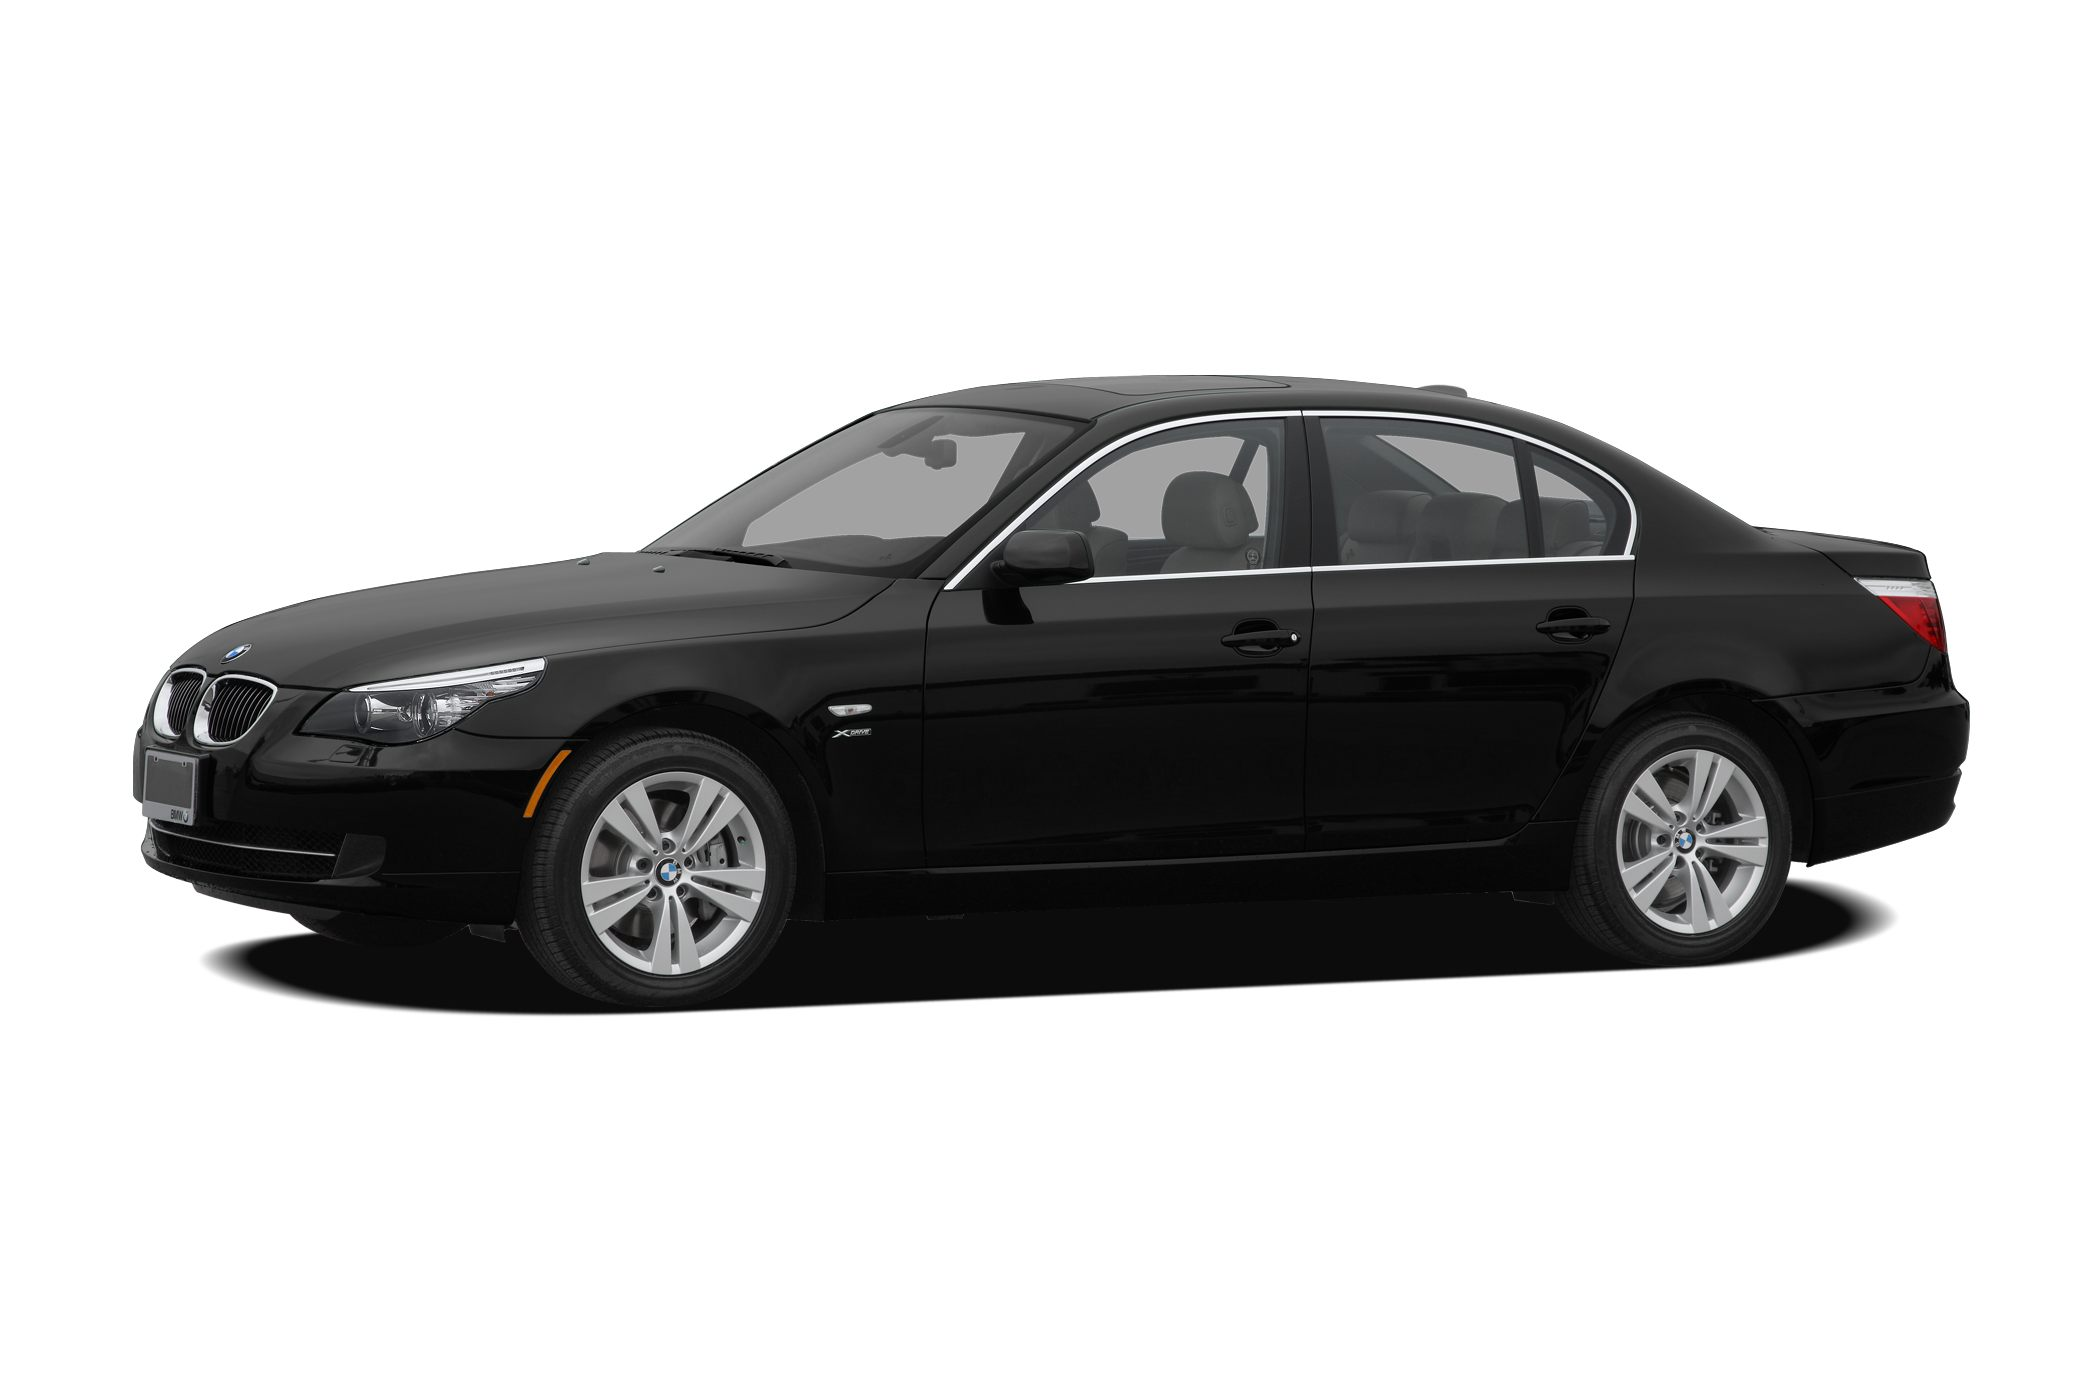 2008 BMW 528 I Sedan for sale in Portland for $17,950 with 68,629 miles